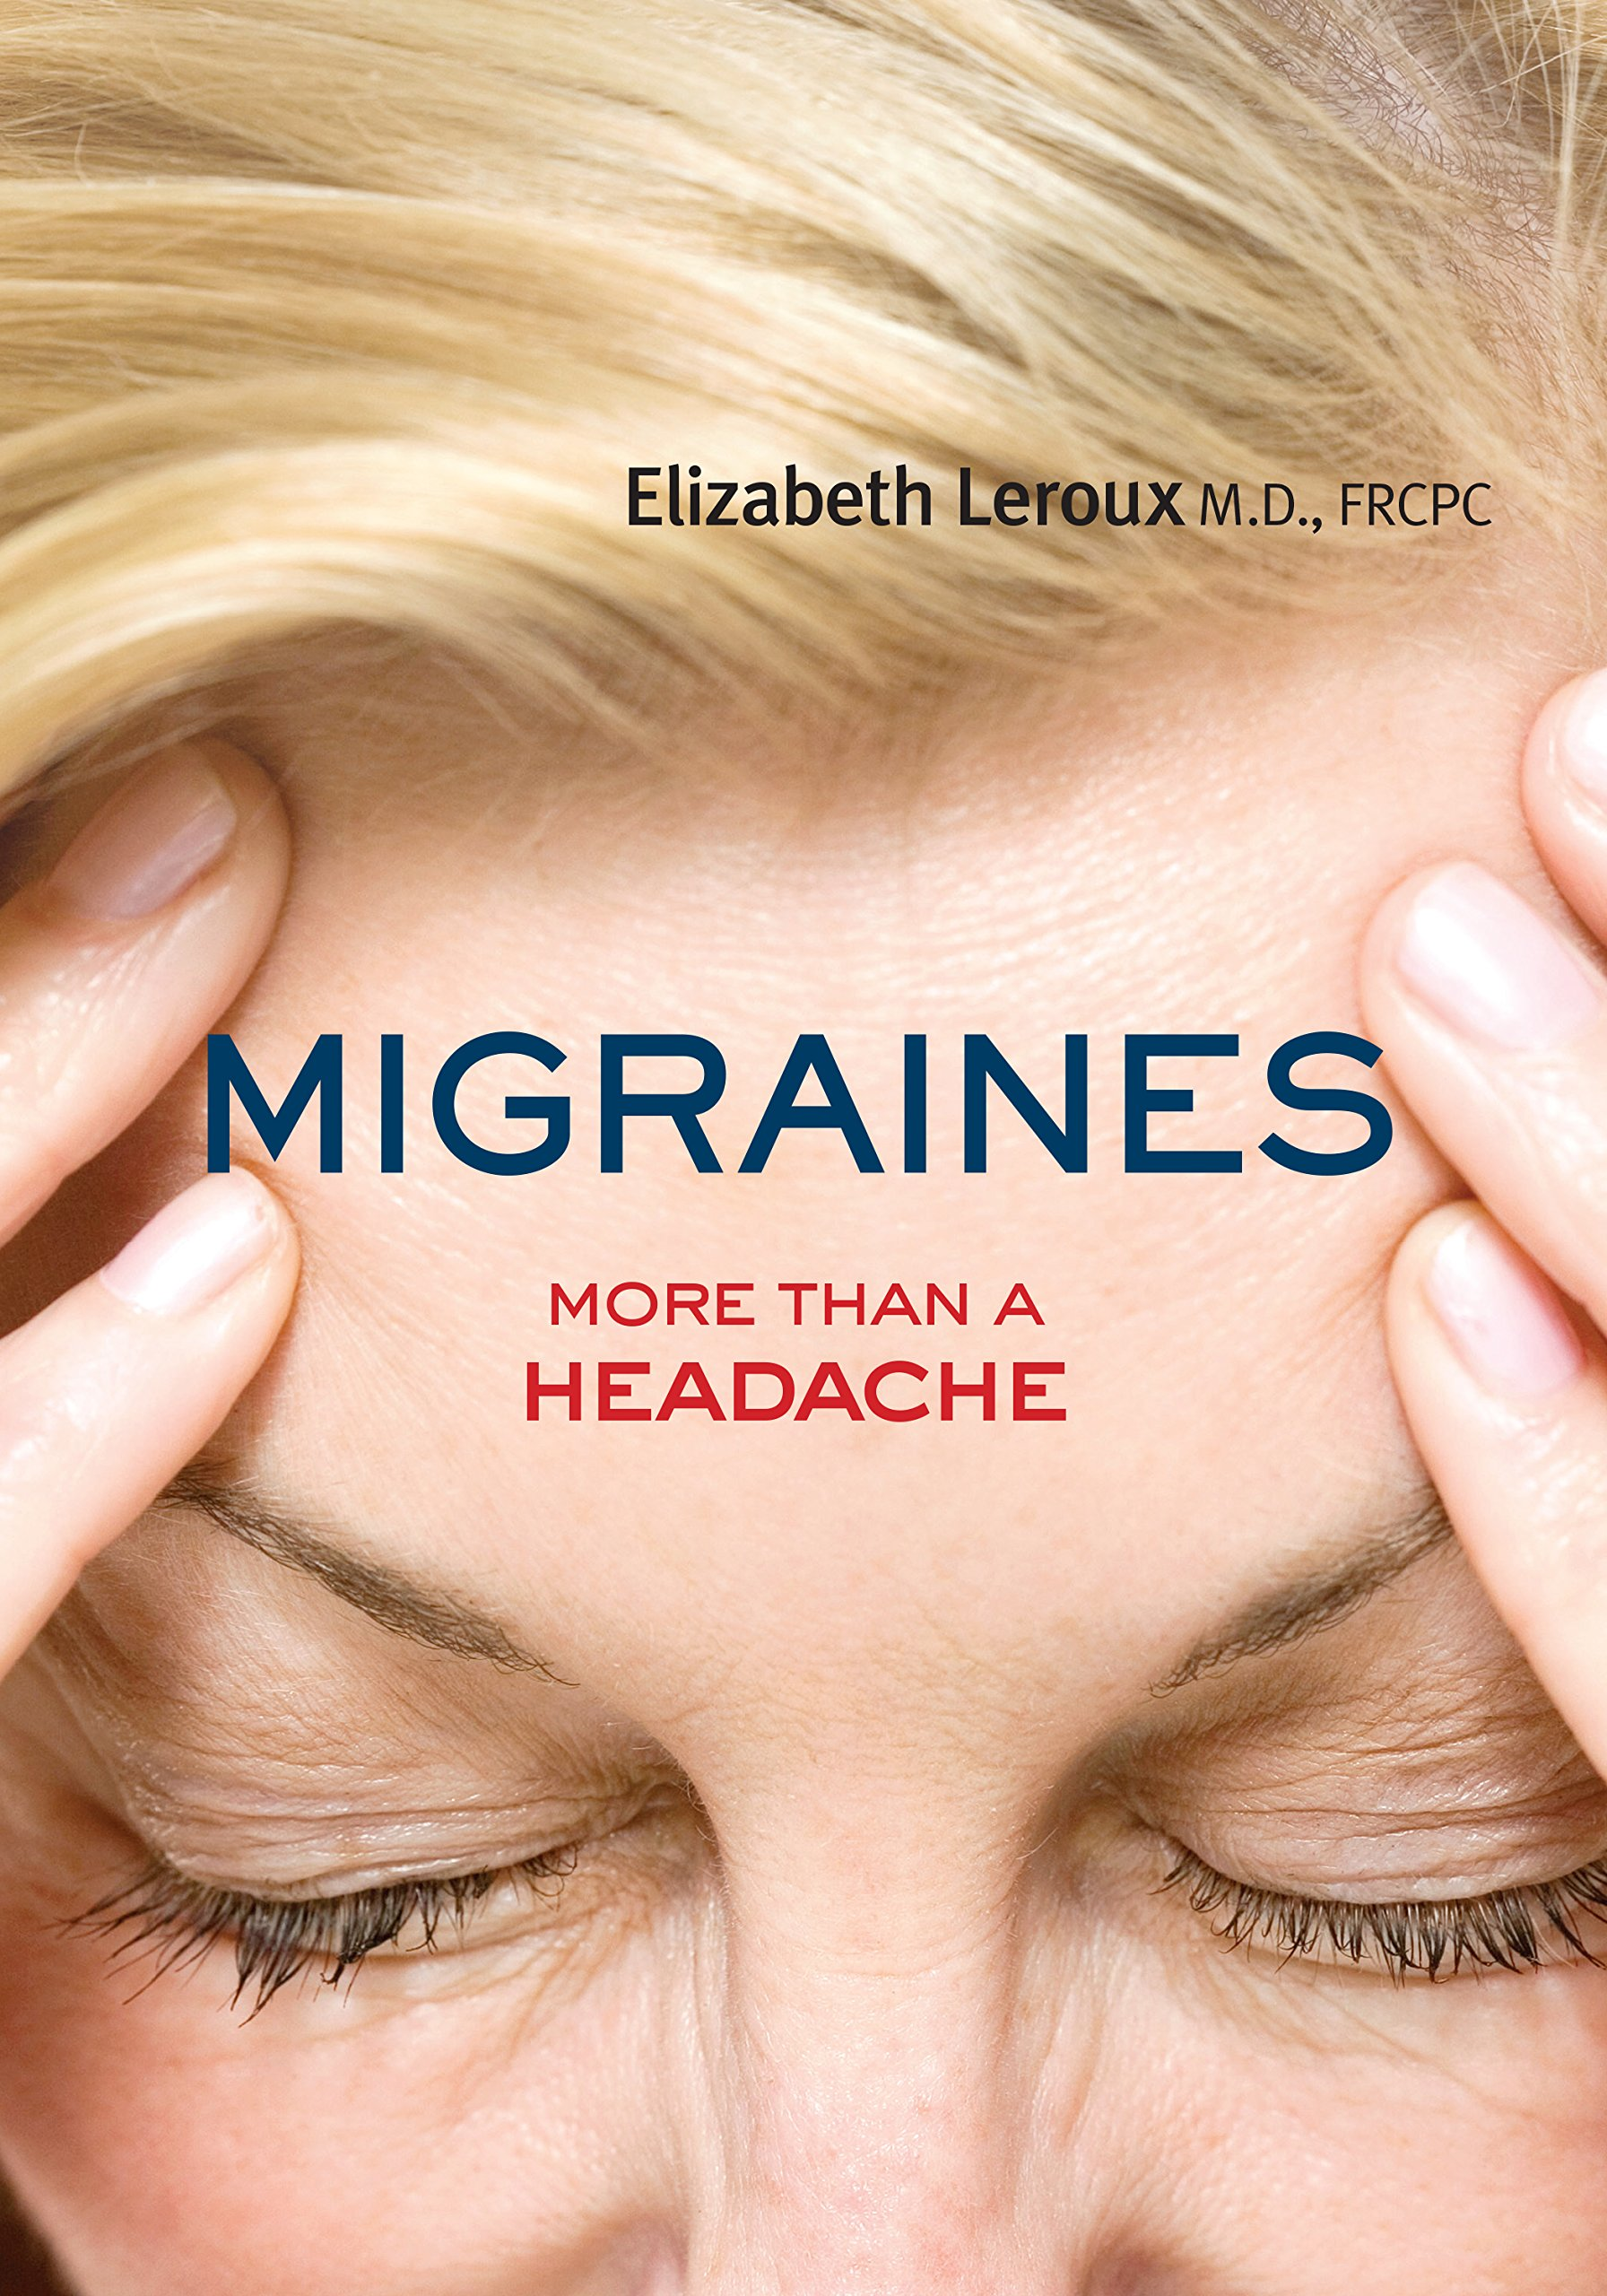 migraines more than a headache your health